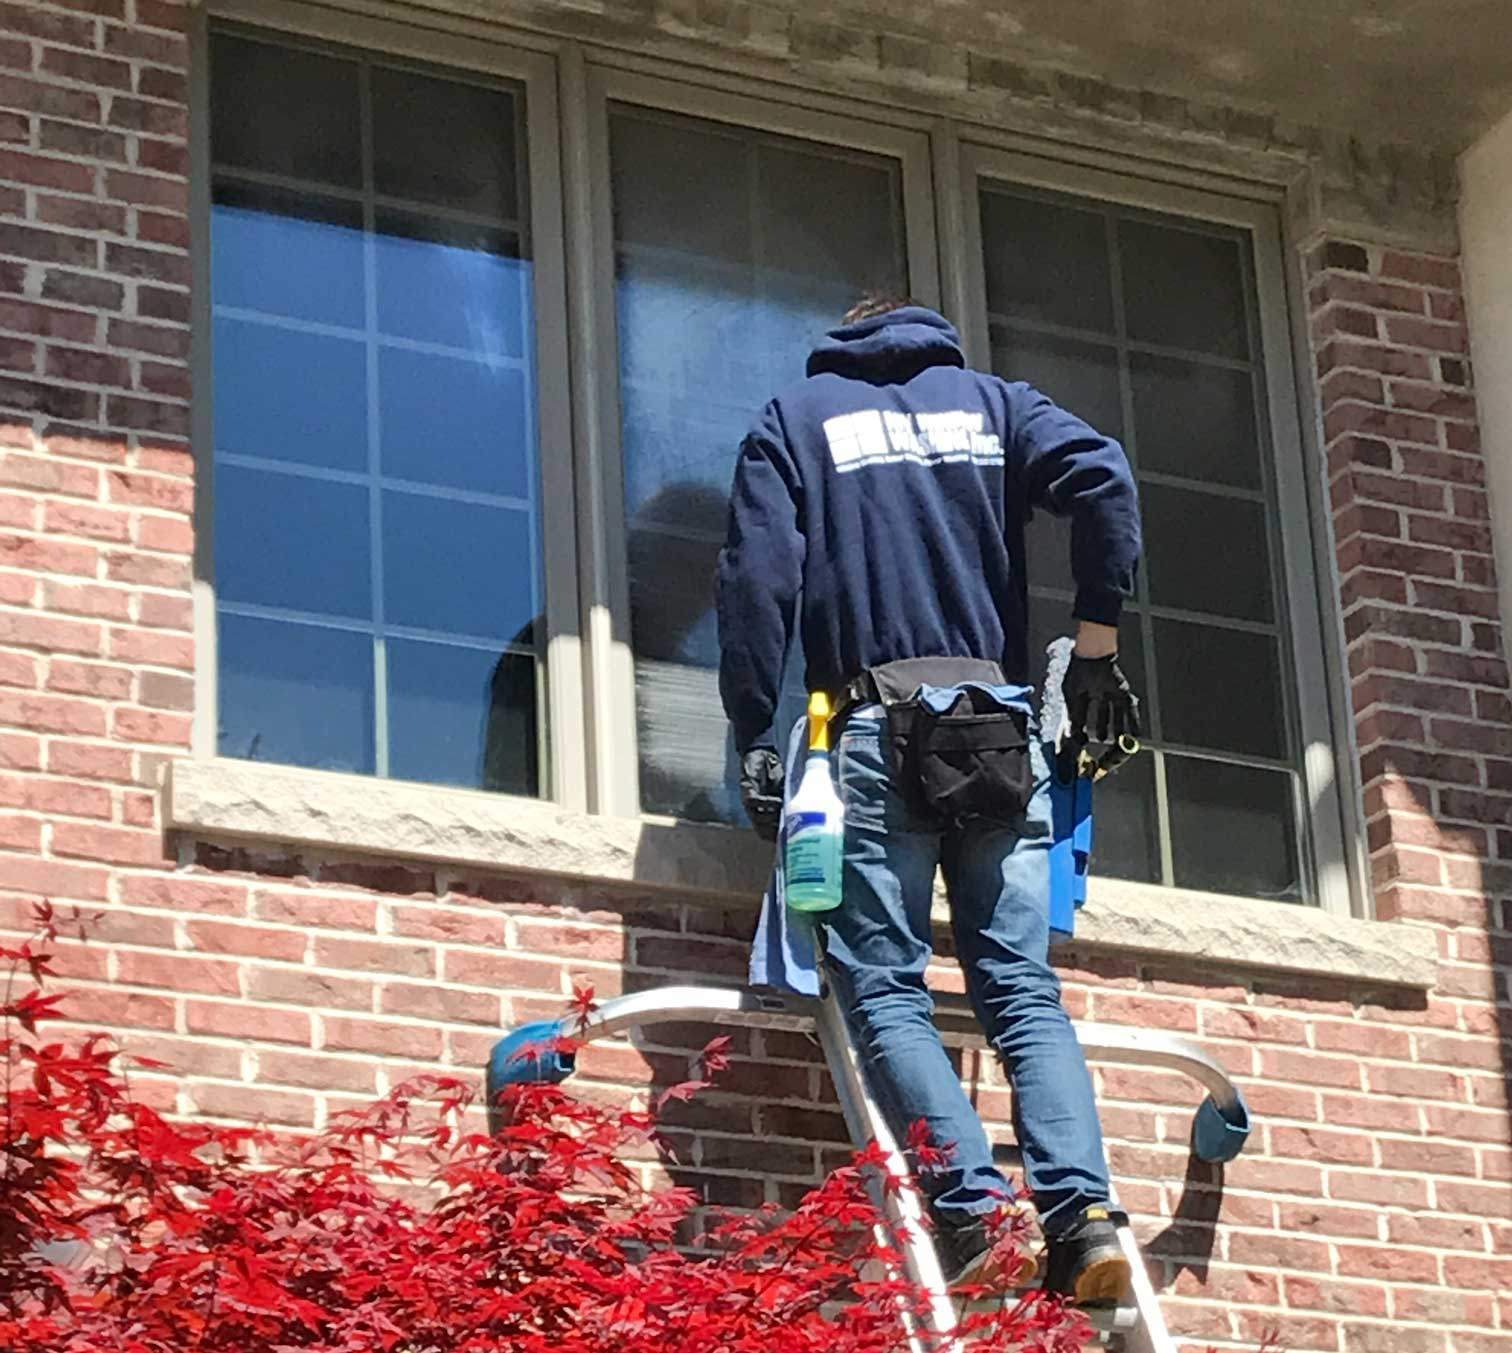 Second floor window cleaning